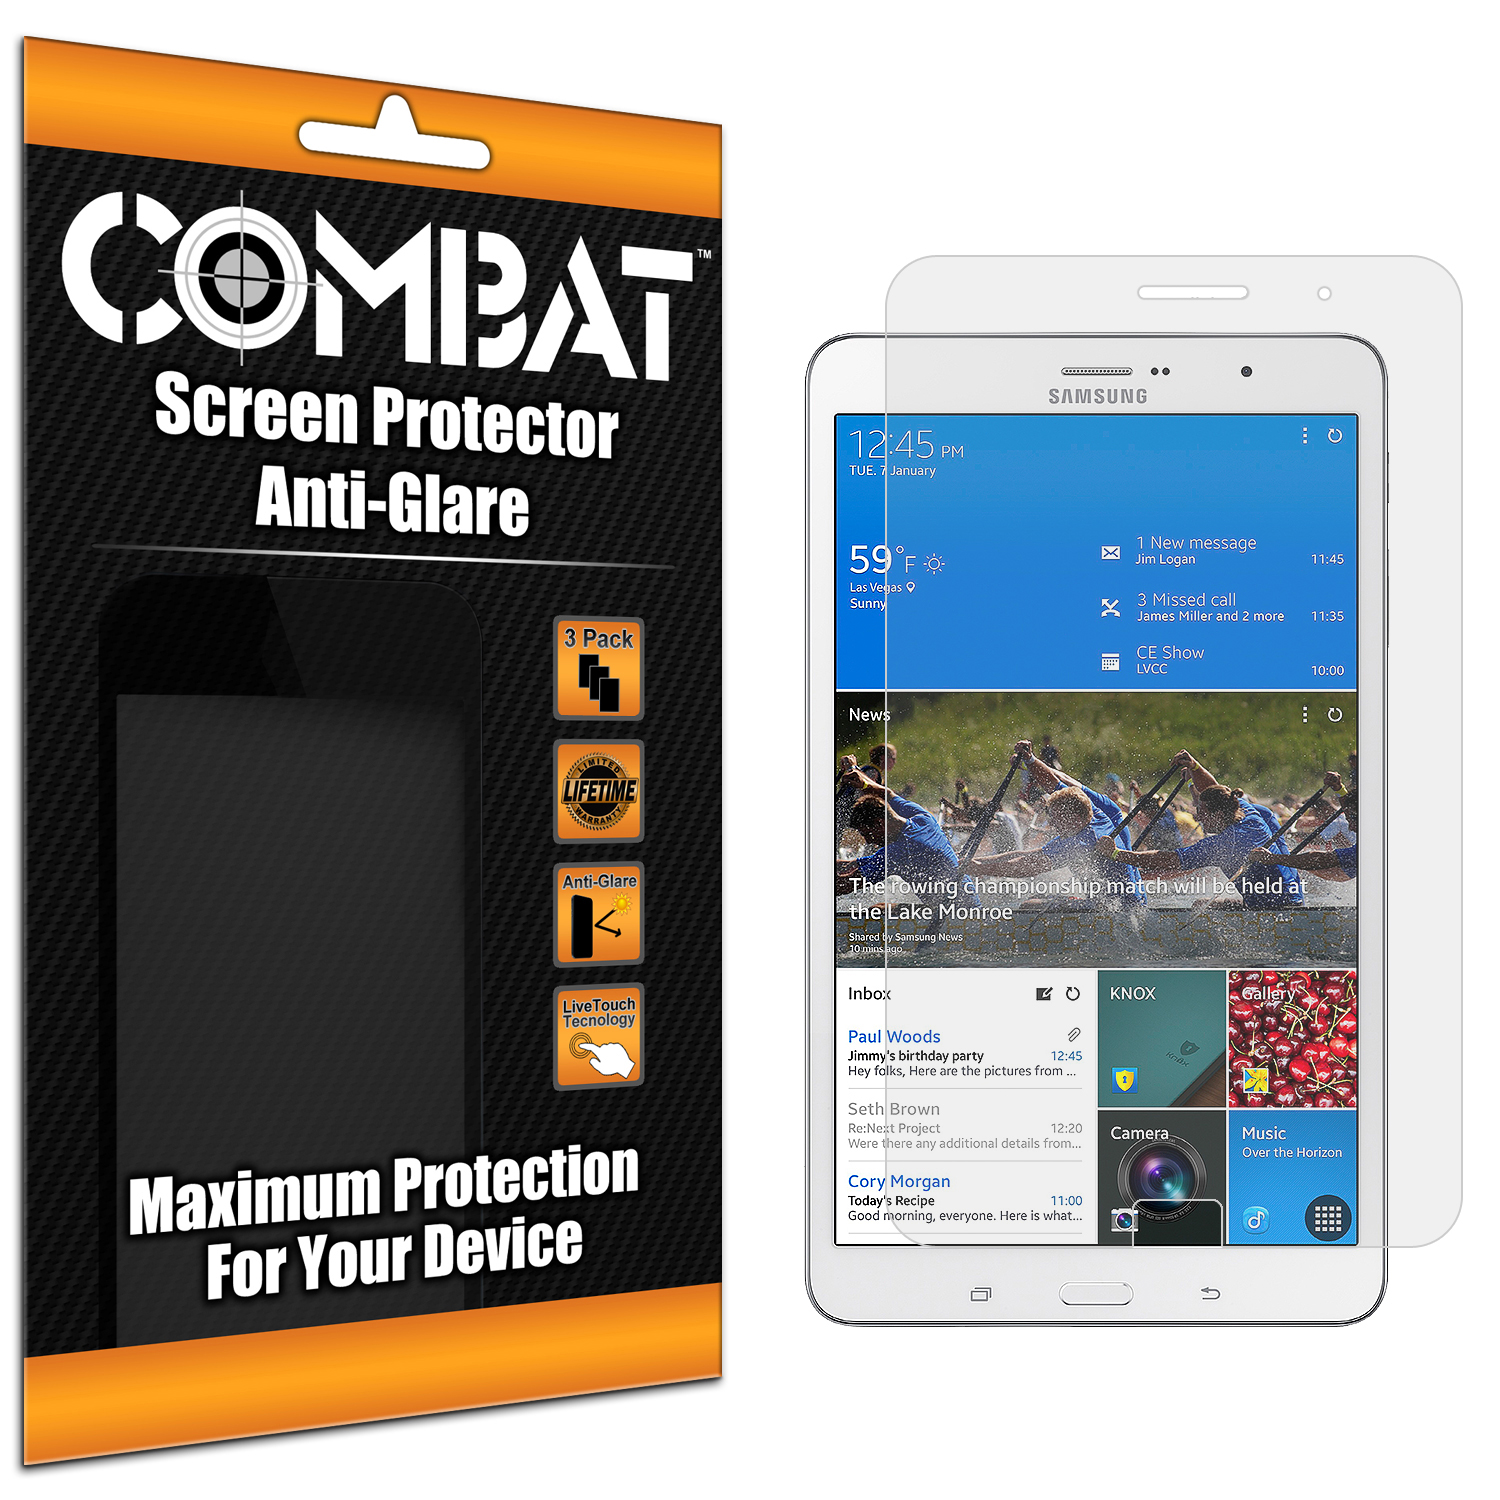 Samsung Galaxy Tab PRO 8.4 Combat 3 Pack Anti-Glare Matte Screen Protector